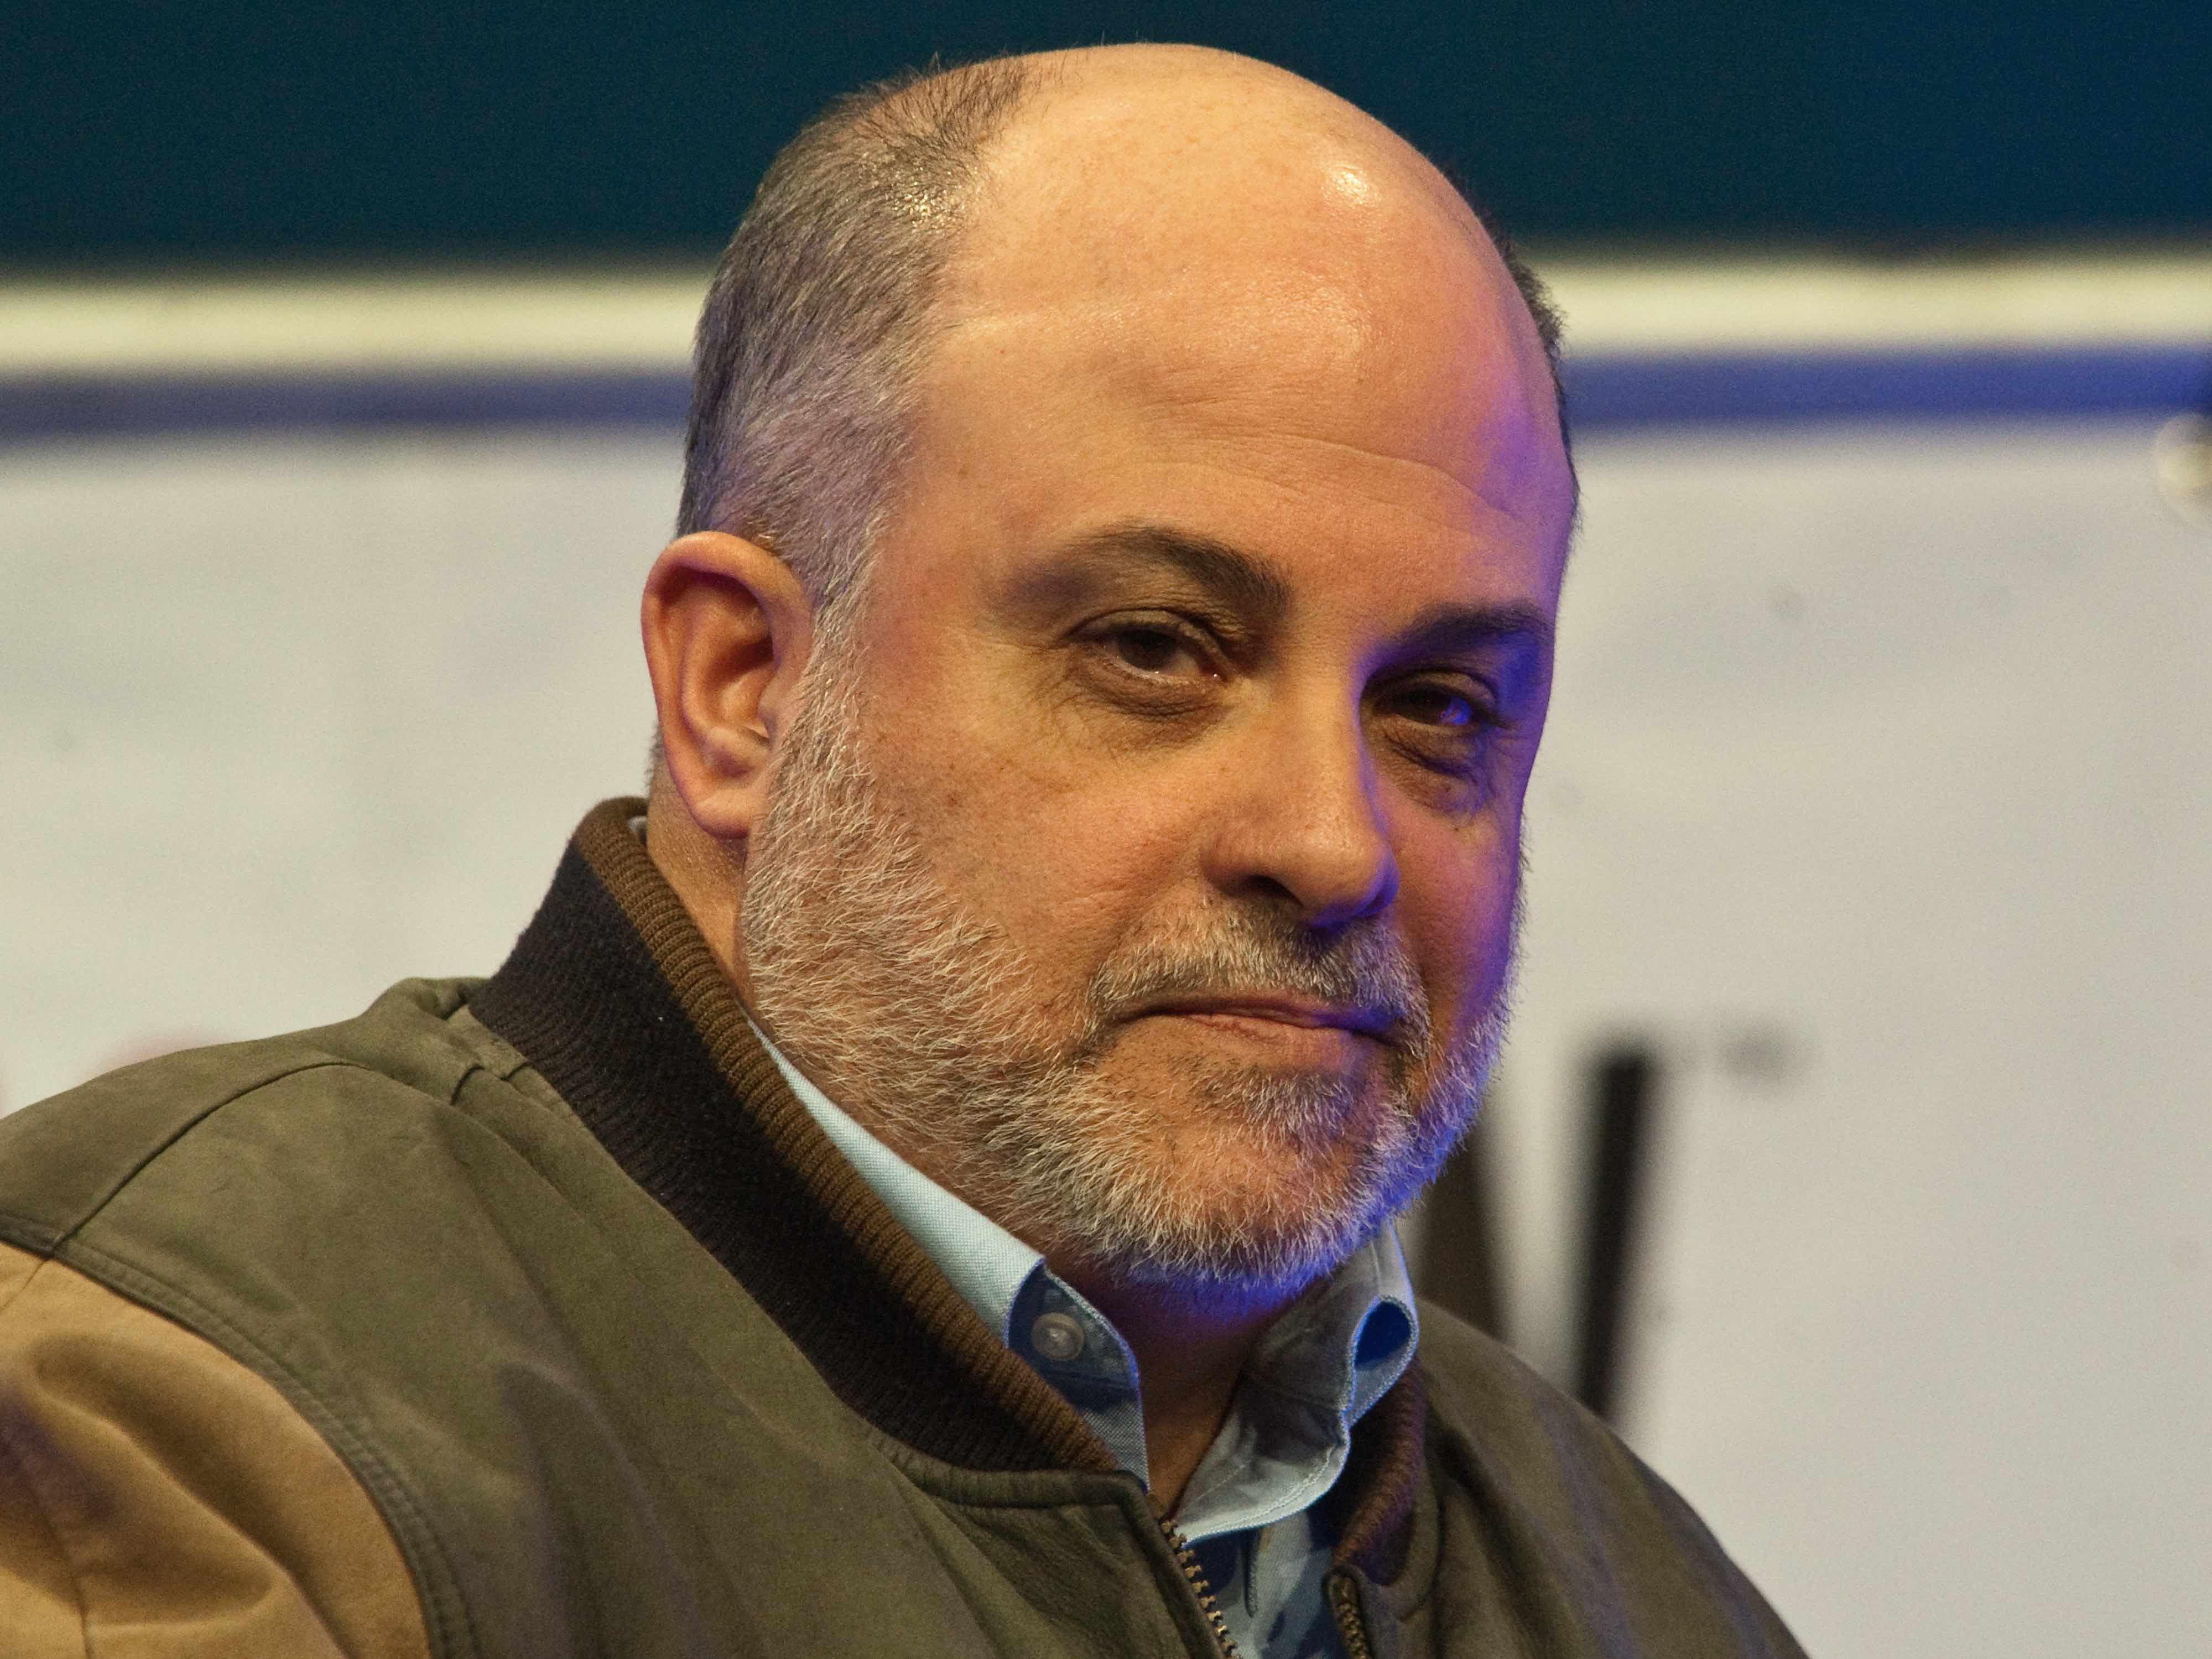 Mark Levin To Speak at Stop Iran Rally in D.C. on Sept 9 Mark Levin